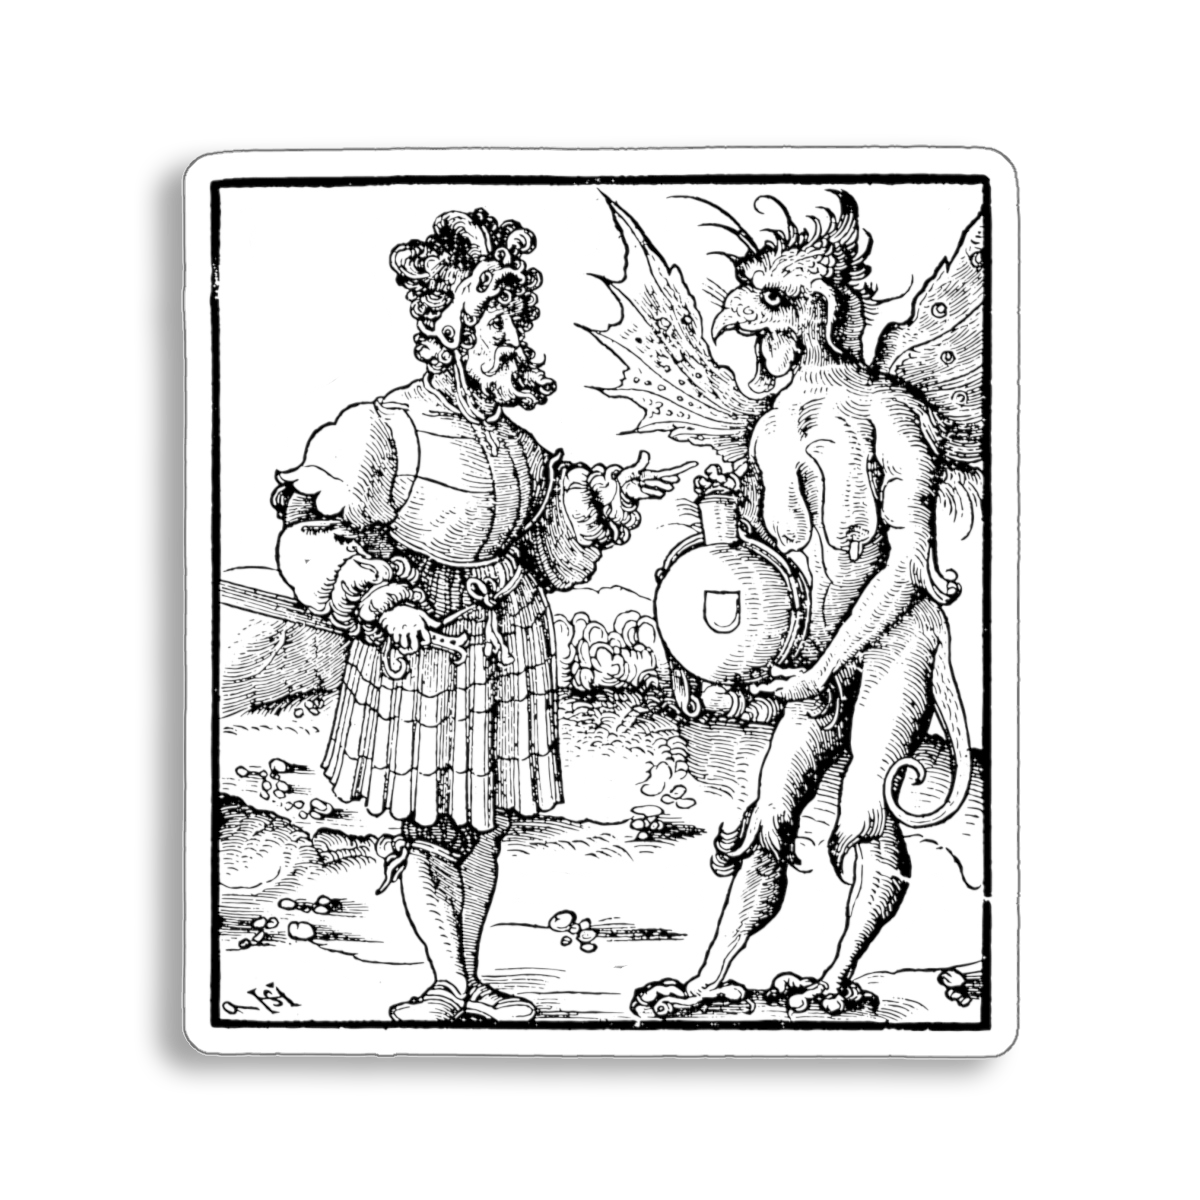 """The Devil Offering Poison to a Knight"" sticker from 1517 Renaissance woodcut"